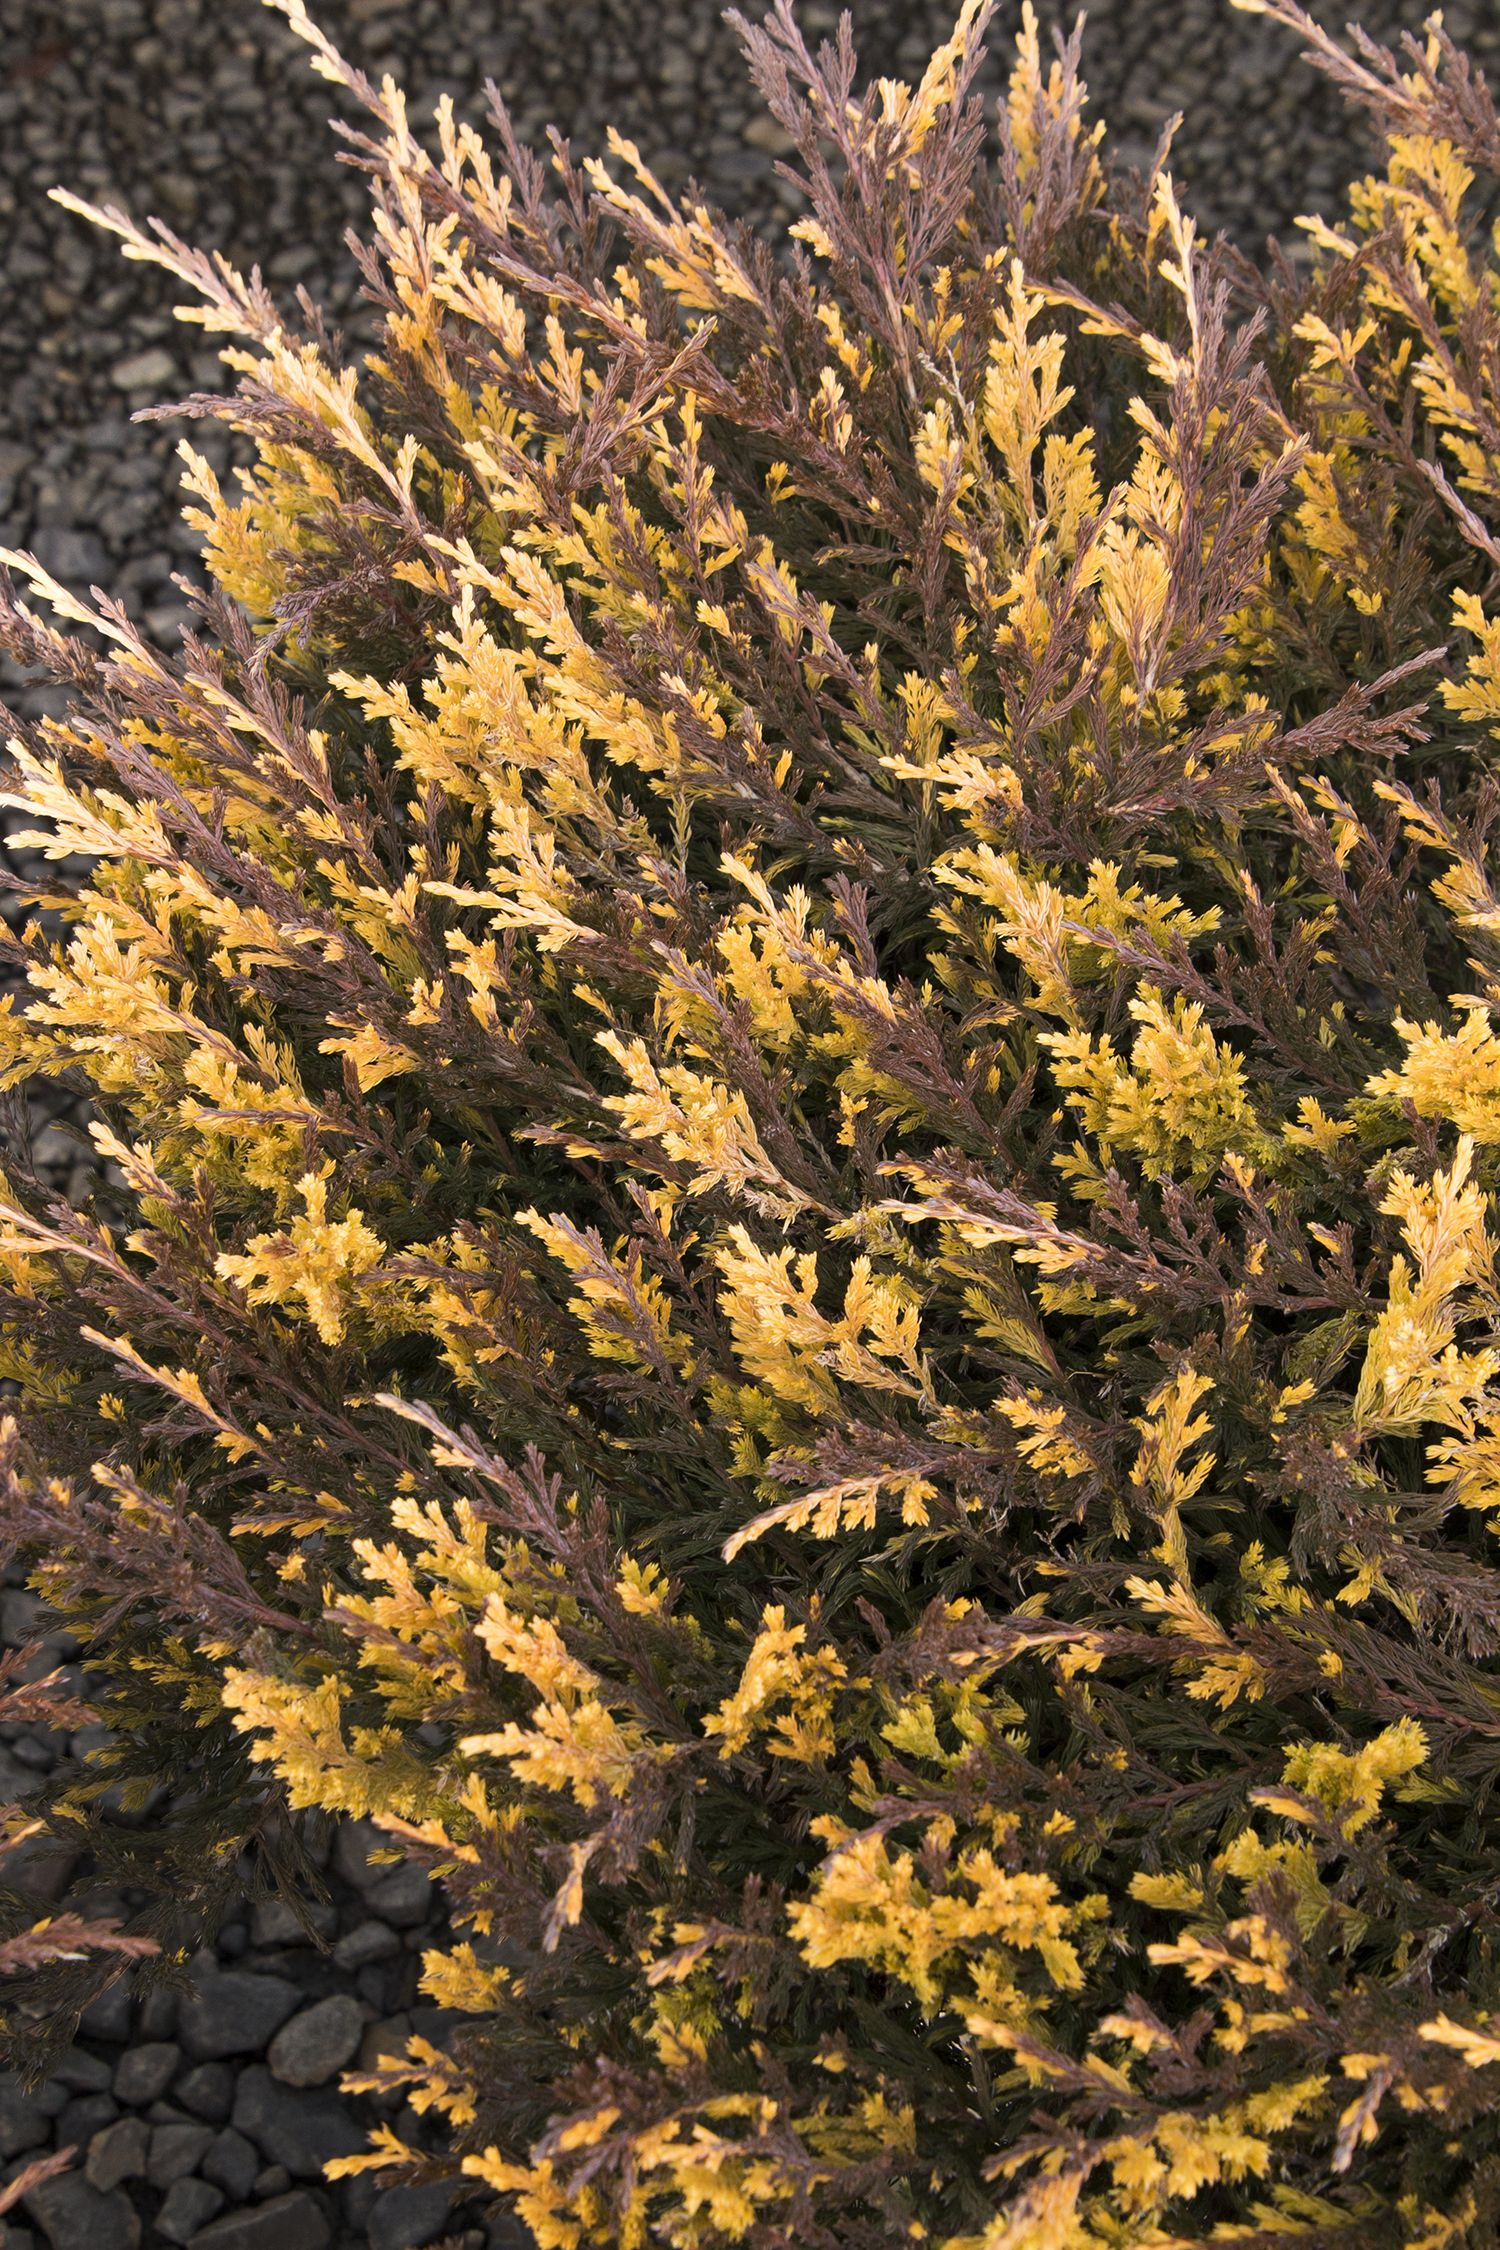 Jazzy Jewel™ Andorra Juniper Exceptional bright green and gold-splashed foliage becomes tinged with bronze and purple tones during the winter months. Full sun. Reaches up  2 ft. tall, spreading to 6 ft. wide. Zone 3-9